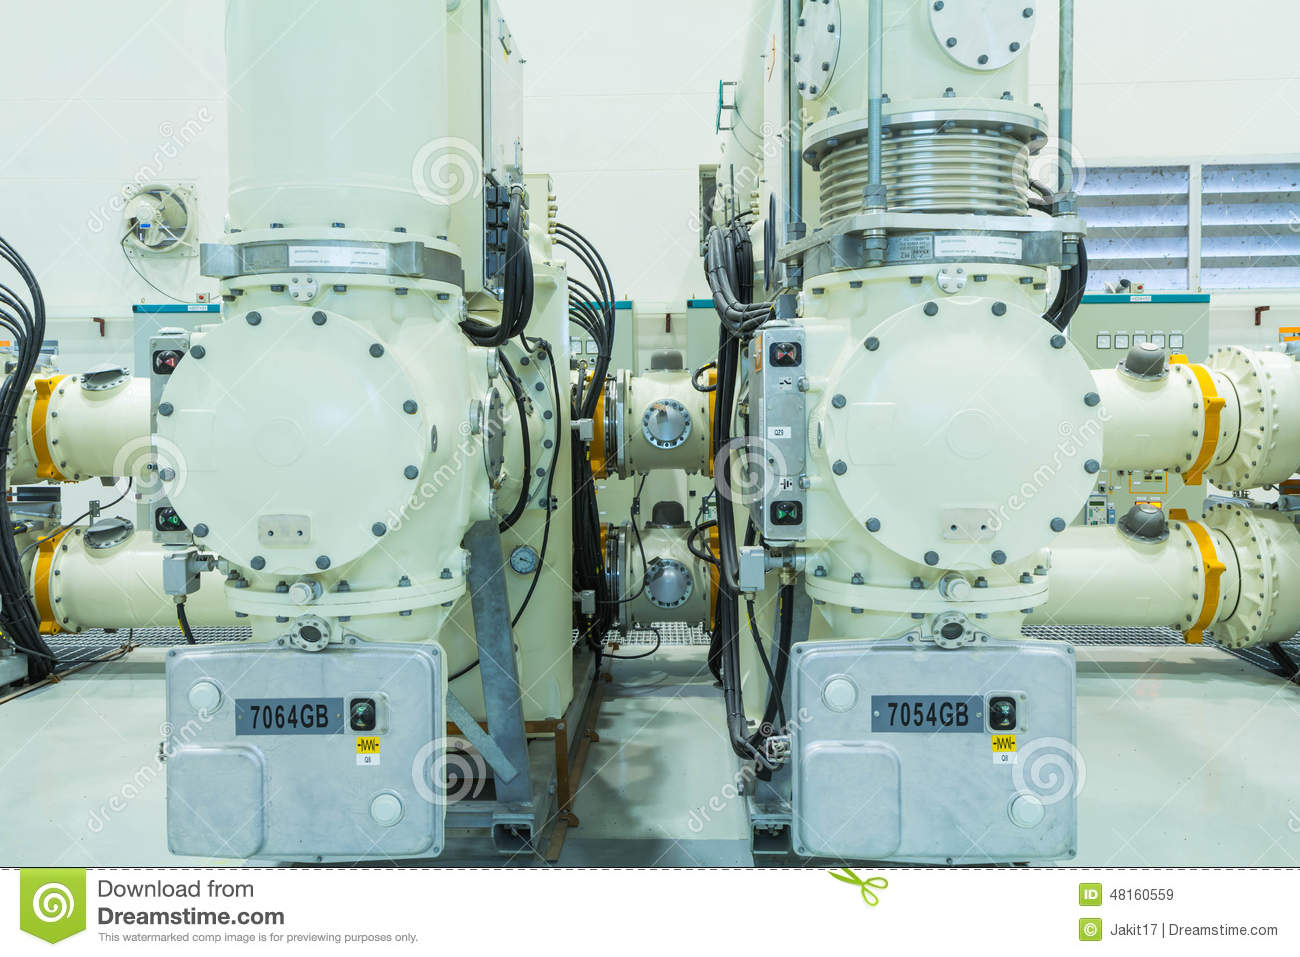 Mobile Substation furthermore Editorial Stock Image Gas Insulated Switchgear High Voltage Electric Power Kv Control Building Gis Image48160559 together with Plan Symbols further 35888128261922588 in addition Fault finding. on power isolator transformer